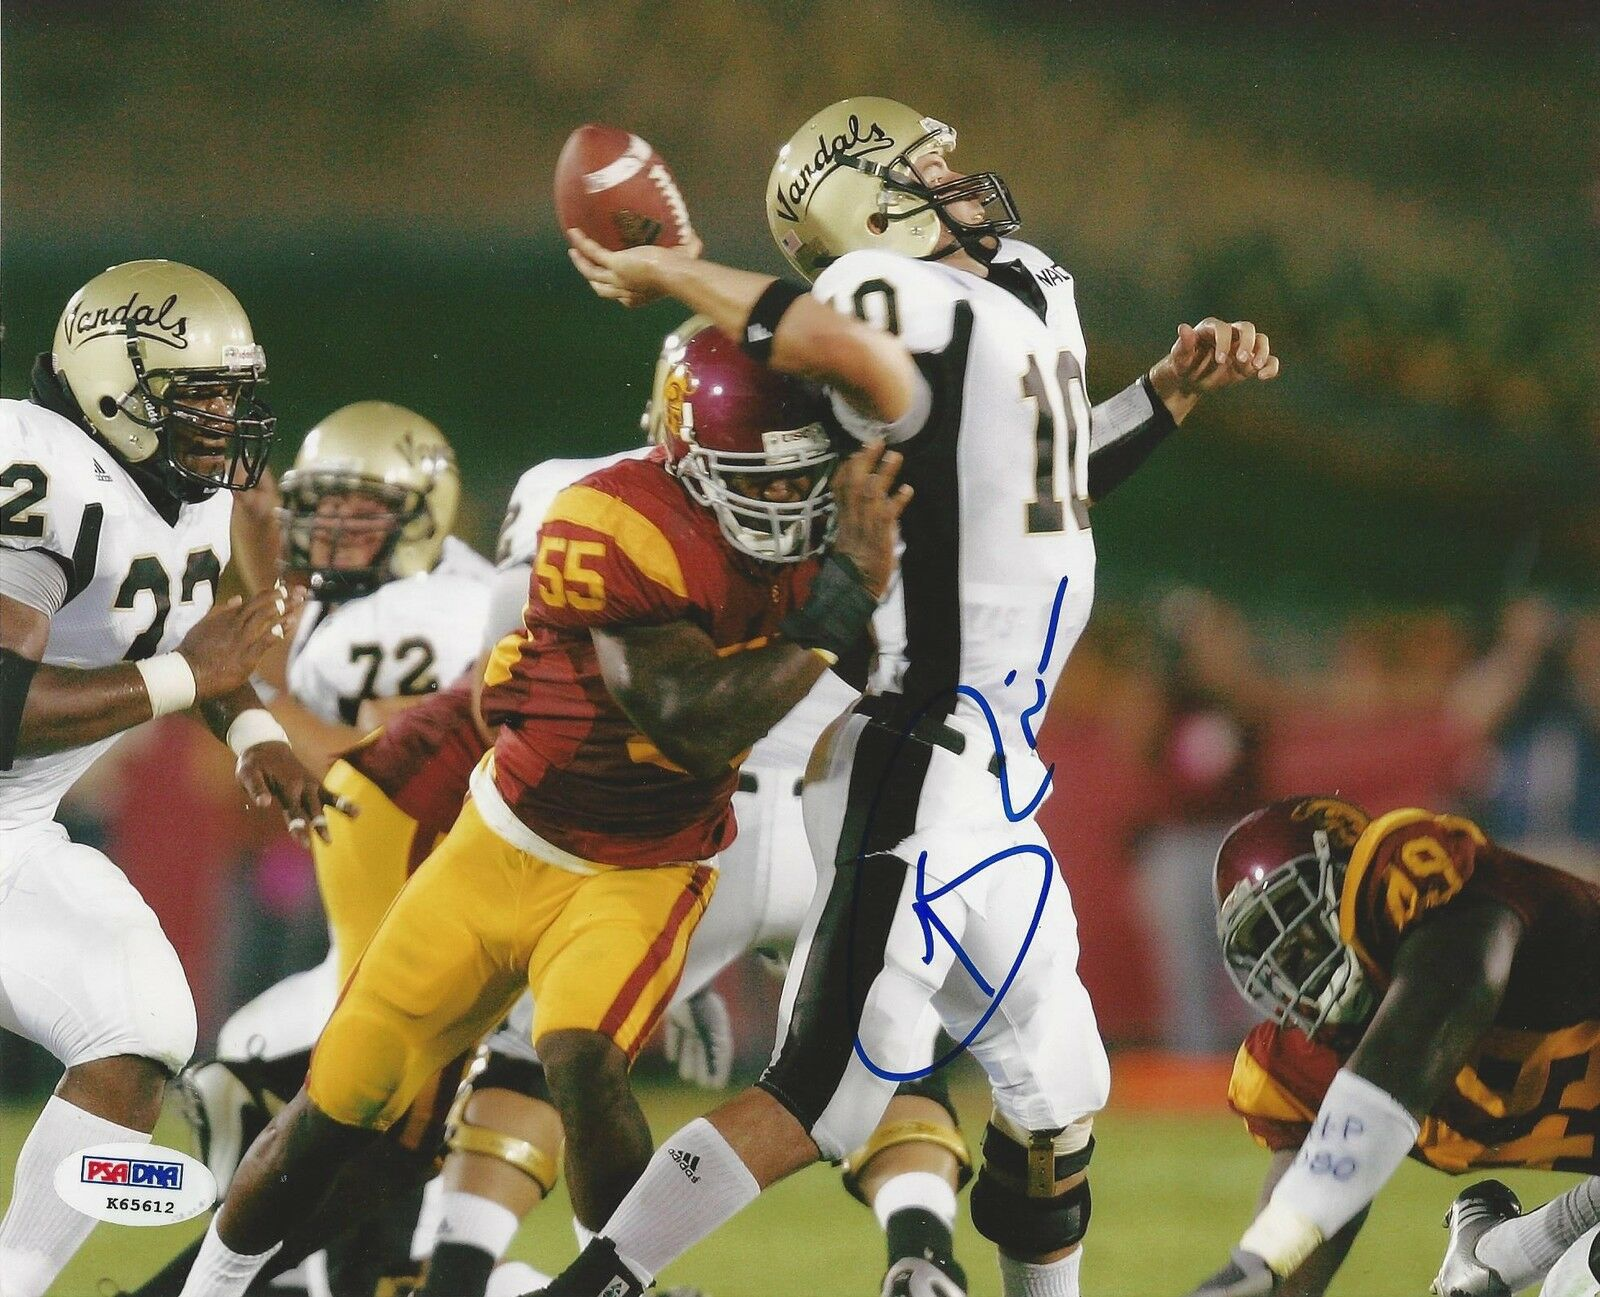 Keith Rivers Signed USC Trojans 8x10 Photo PSA/DNA #K65612